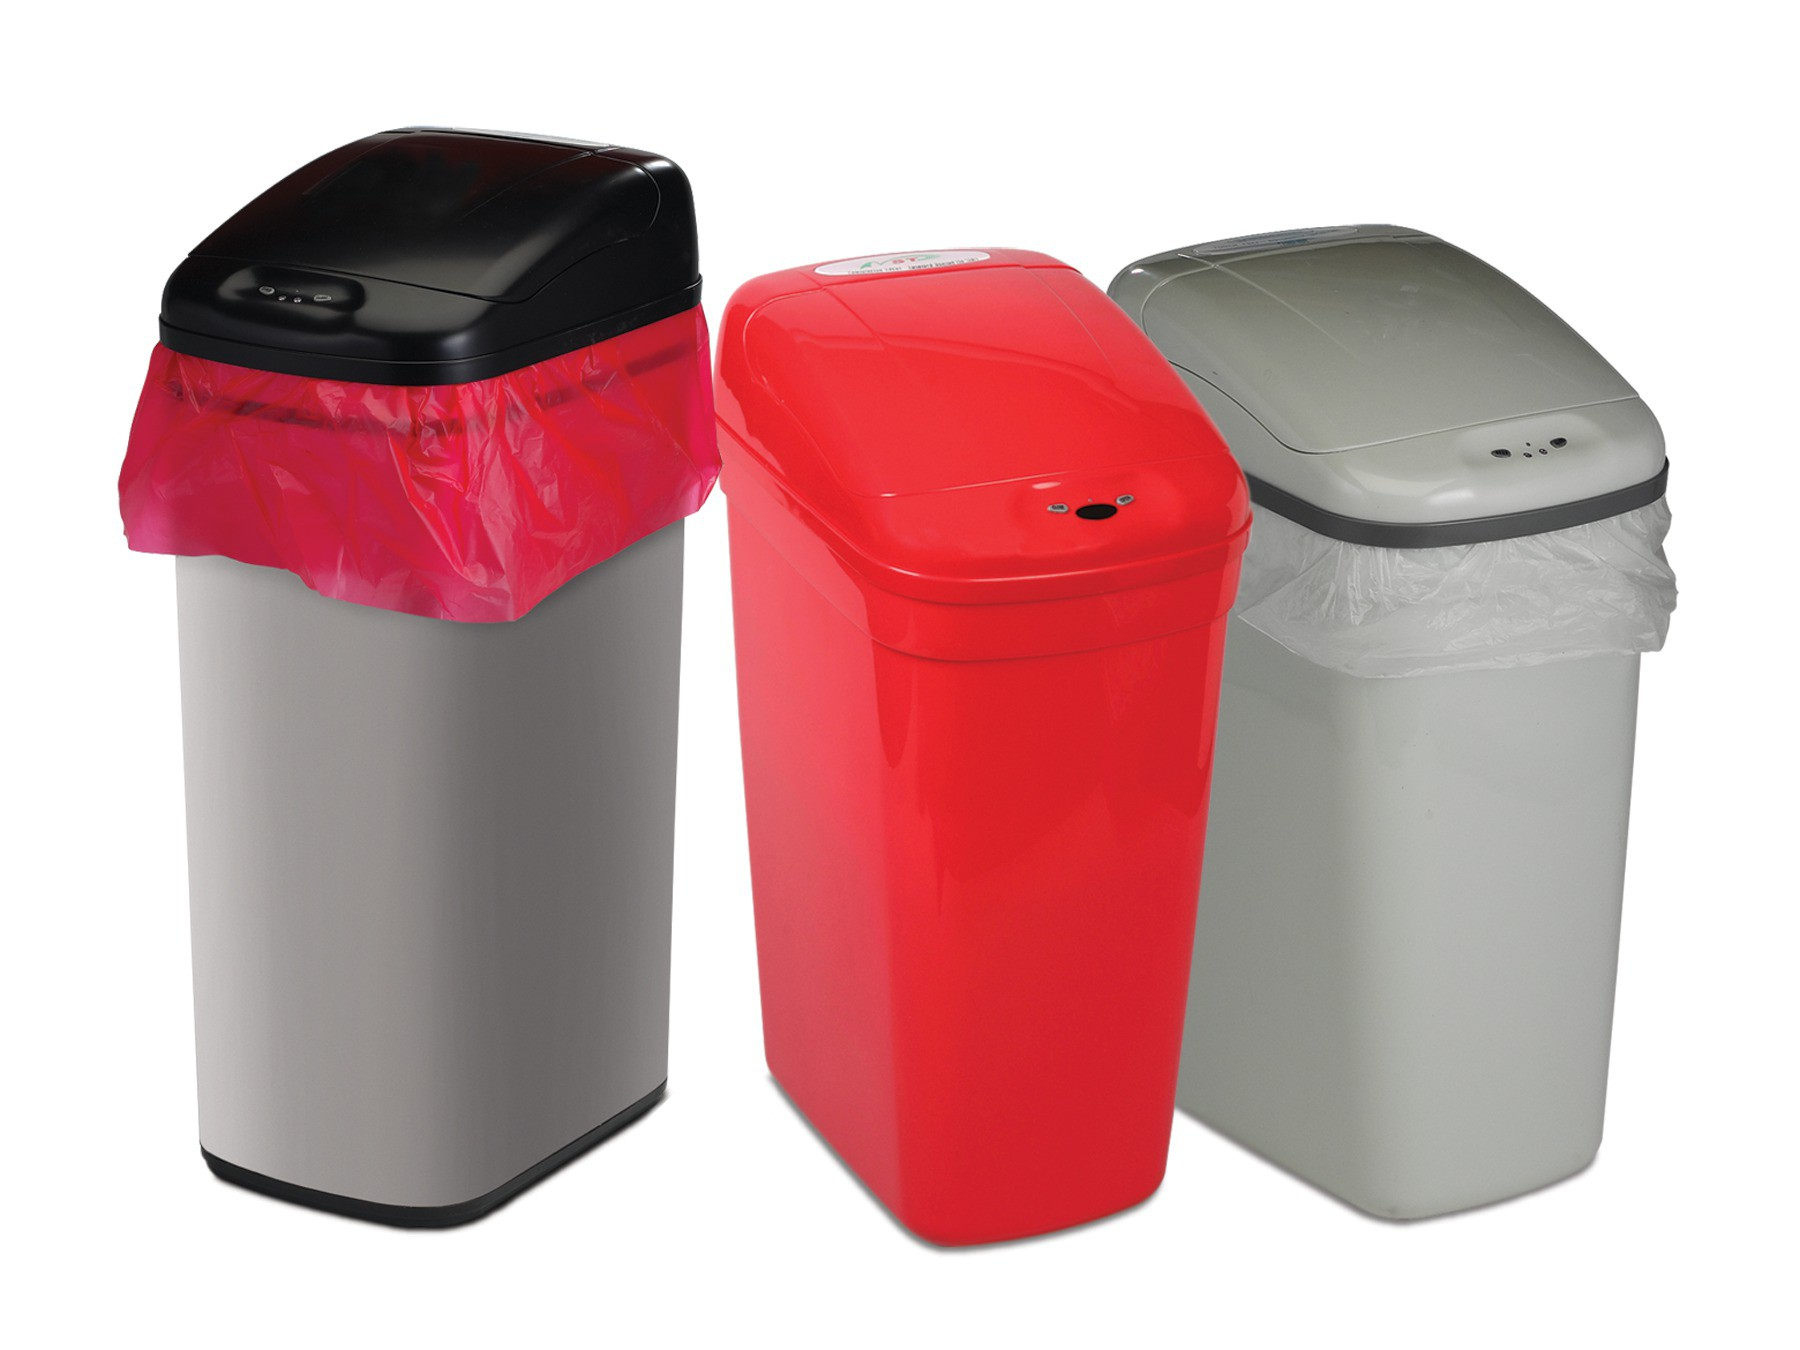 Bel-Art Touch Free Stainless Steel 12 Gallon Automatic Waste Can with Black Lid